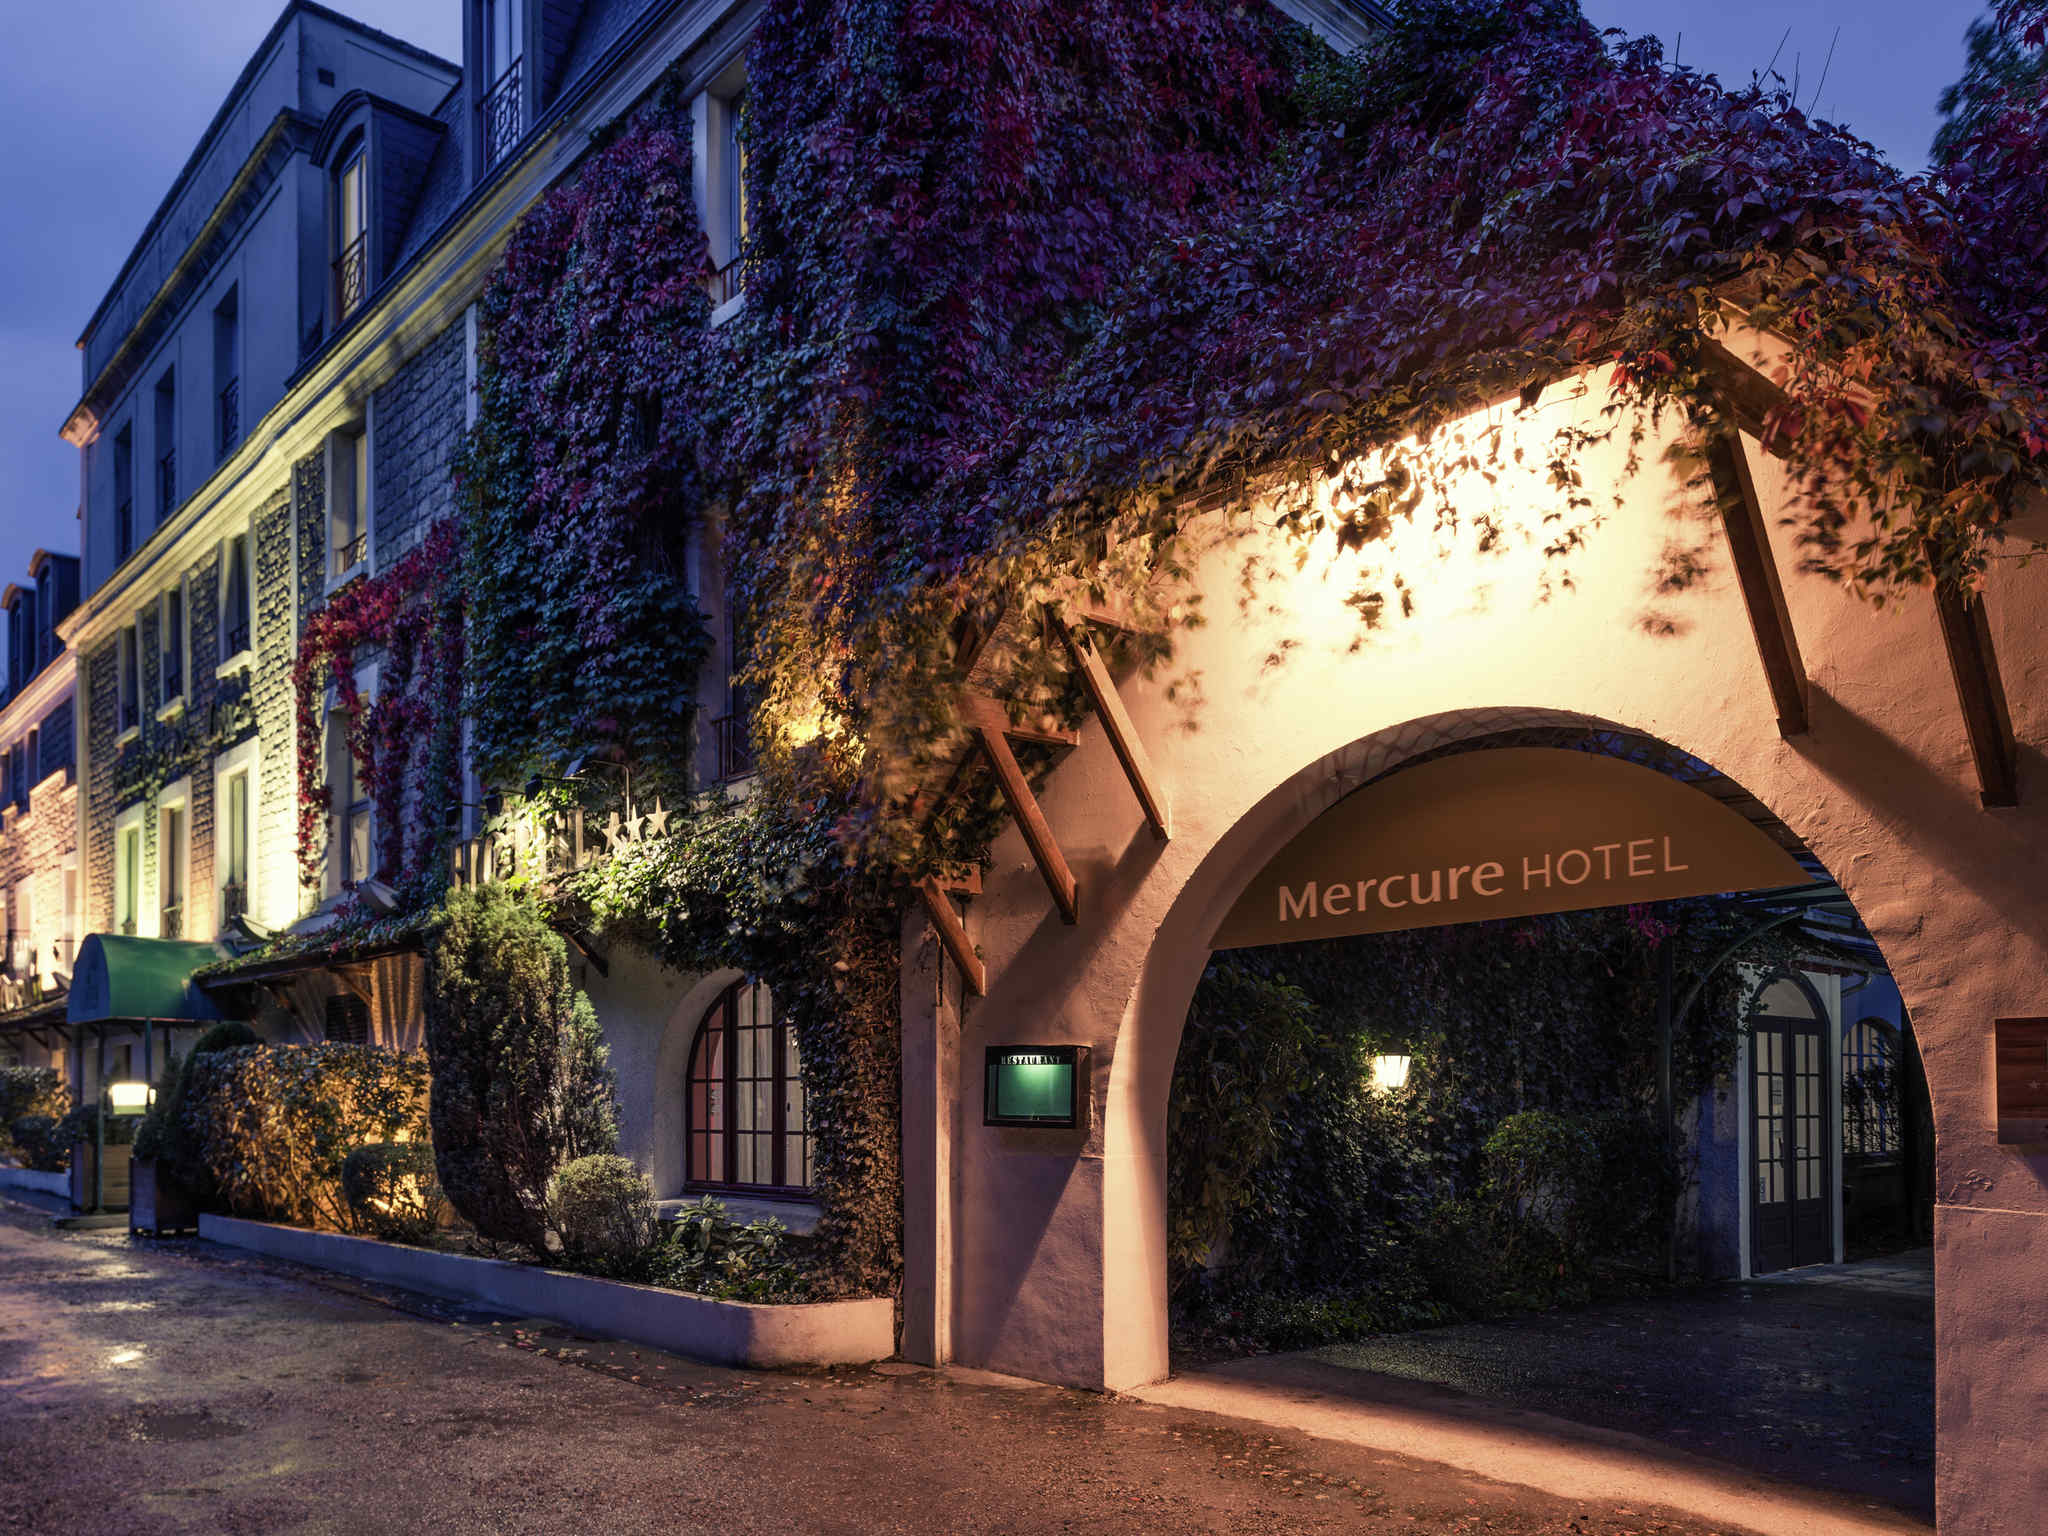 فندق - Hôtel Mercure Paris Ouest Saint-Germain